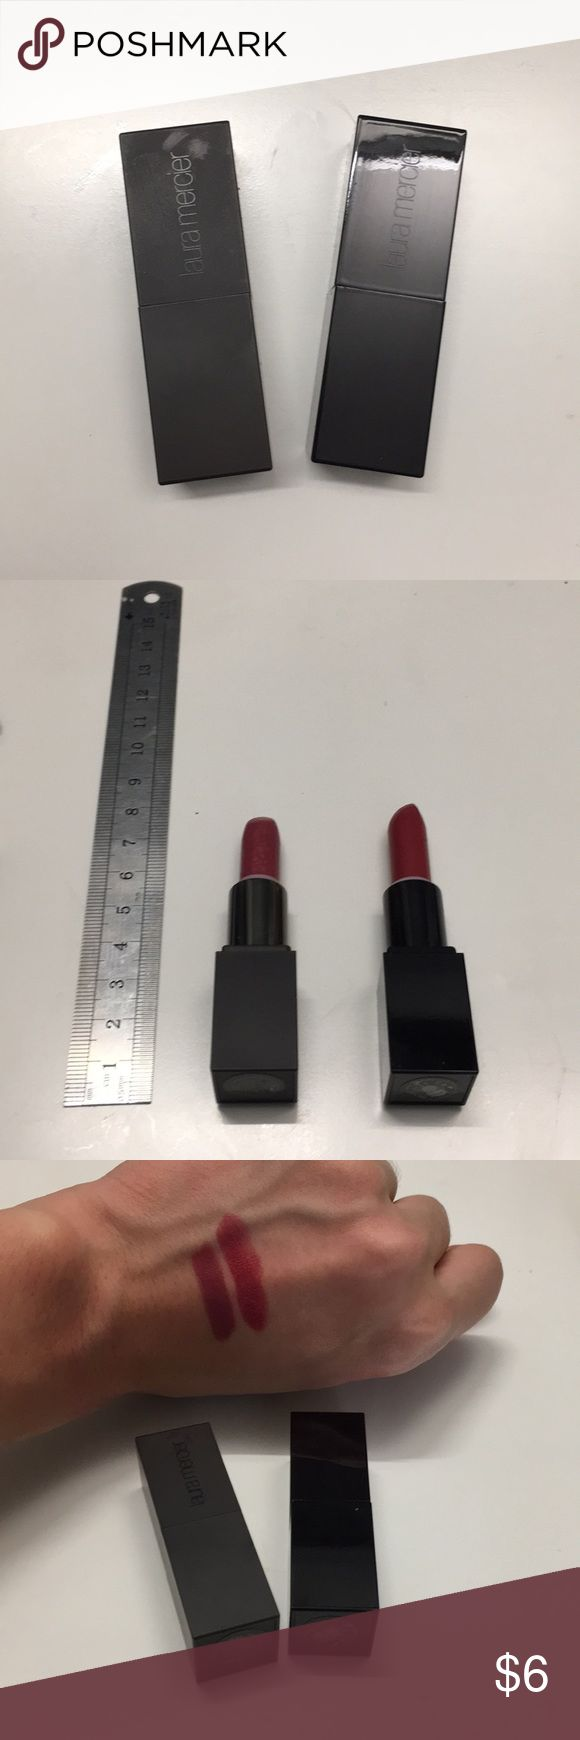 Two Laura mercier lipstick minis Laura Mercier velour lovers lip colour in DEVOTION; Laura Mercier creme smooth lip colour in Audrey; Please see the picture for how much of the product is left and the swatch on my skin (MAC NC20) laura mercier Makeup Lipstick